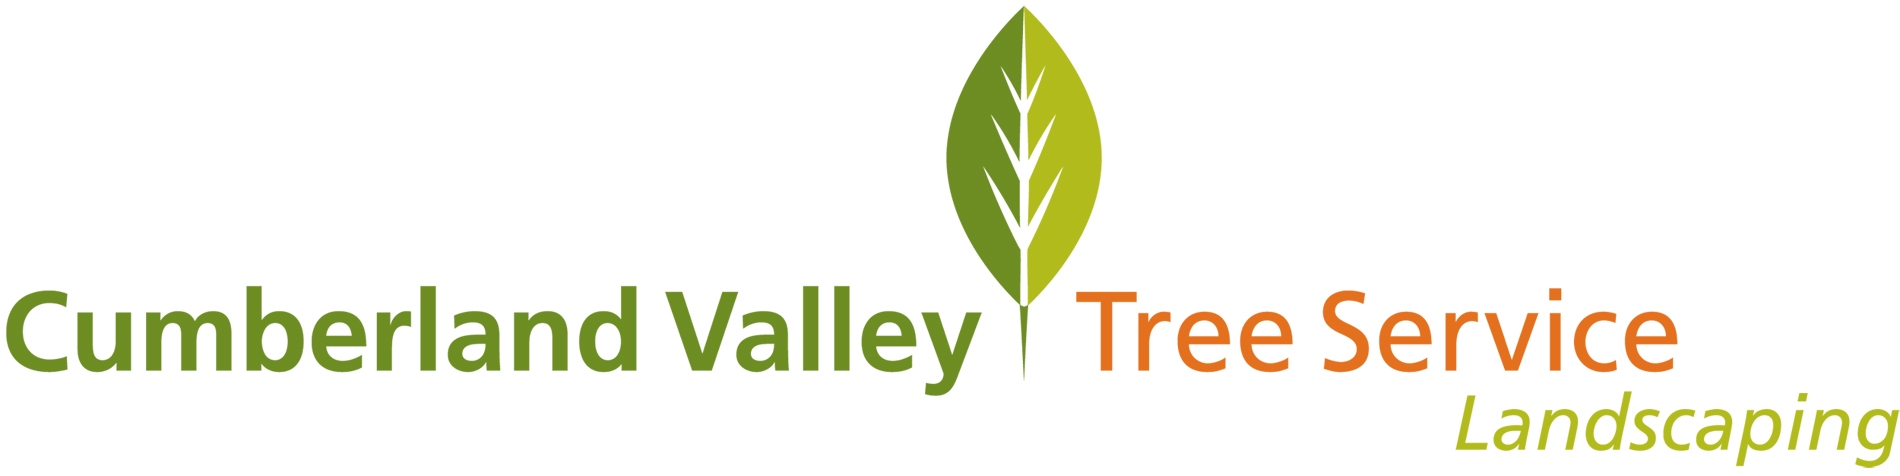 Cumberland Valley Tree Service Logo